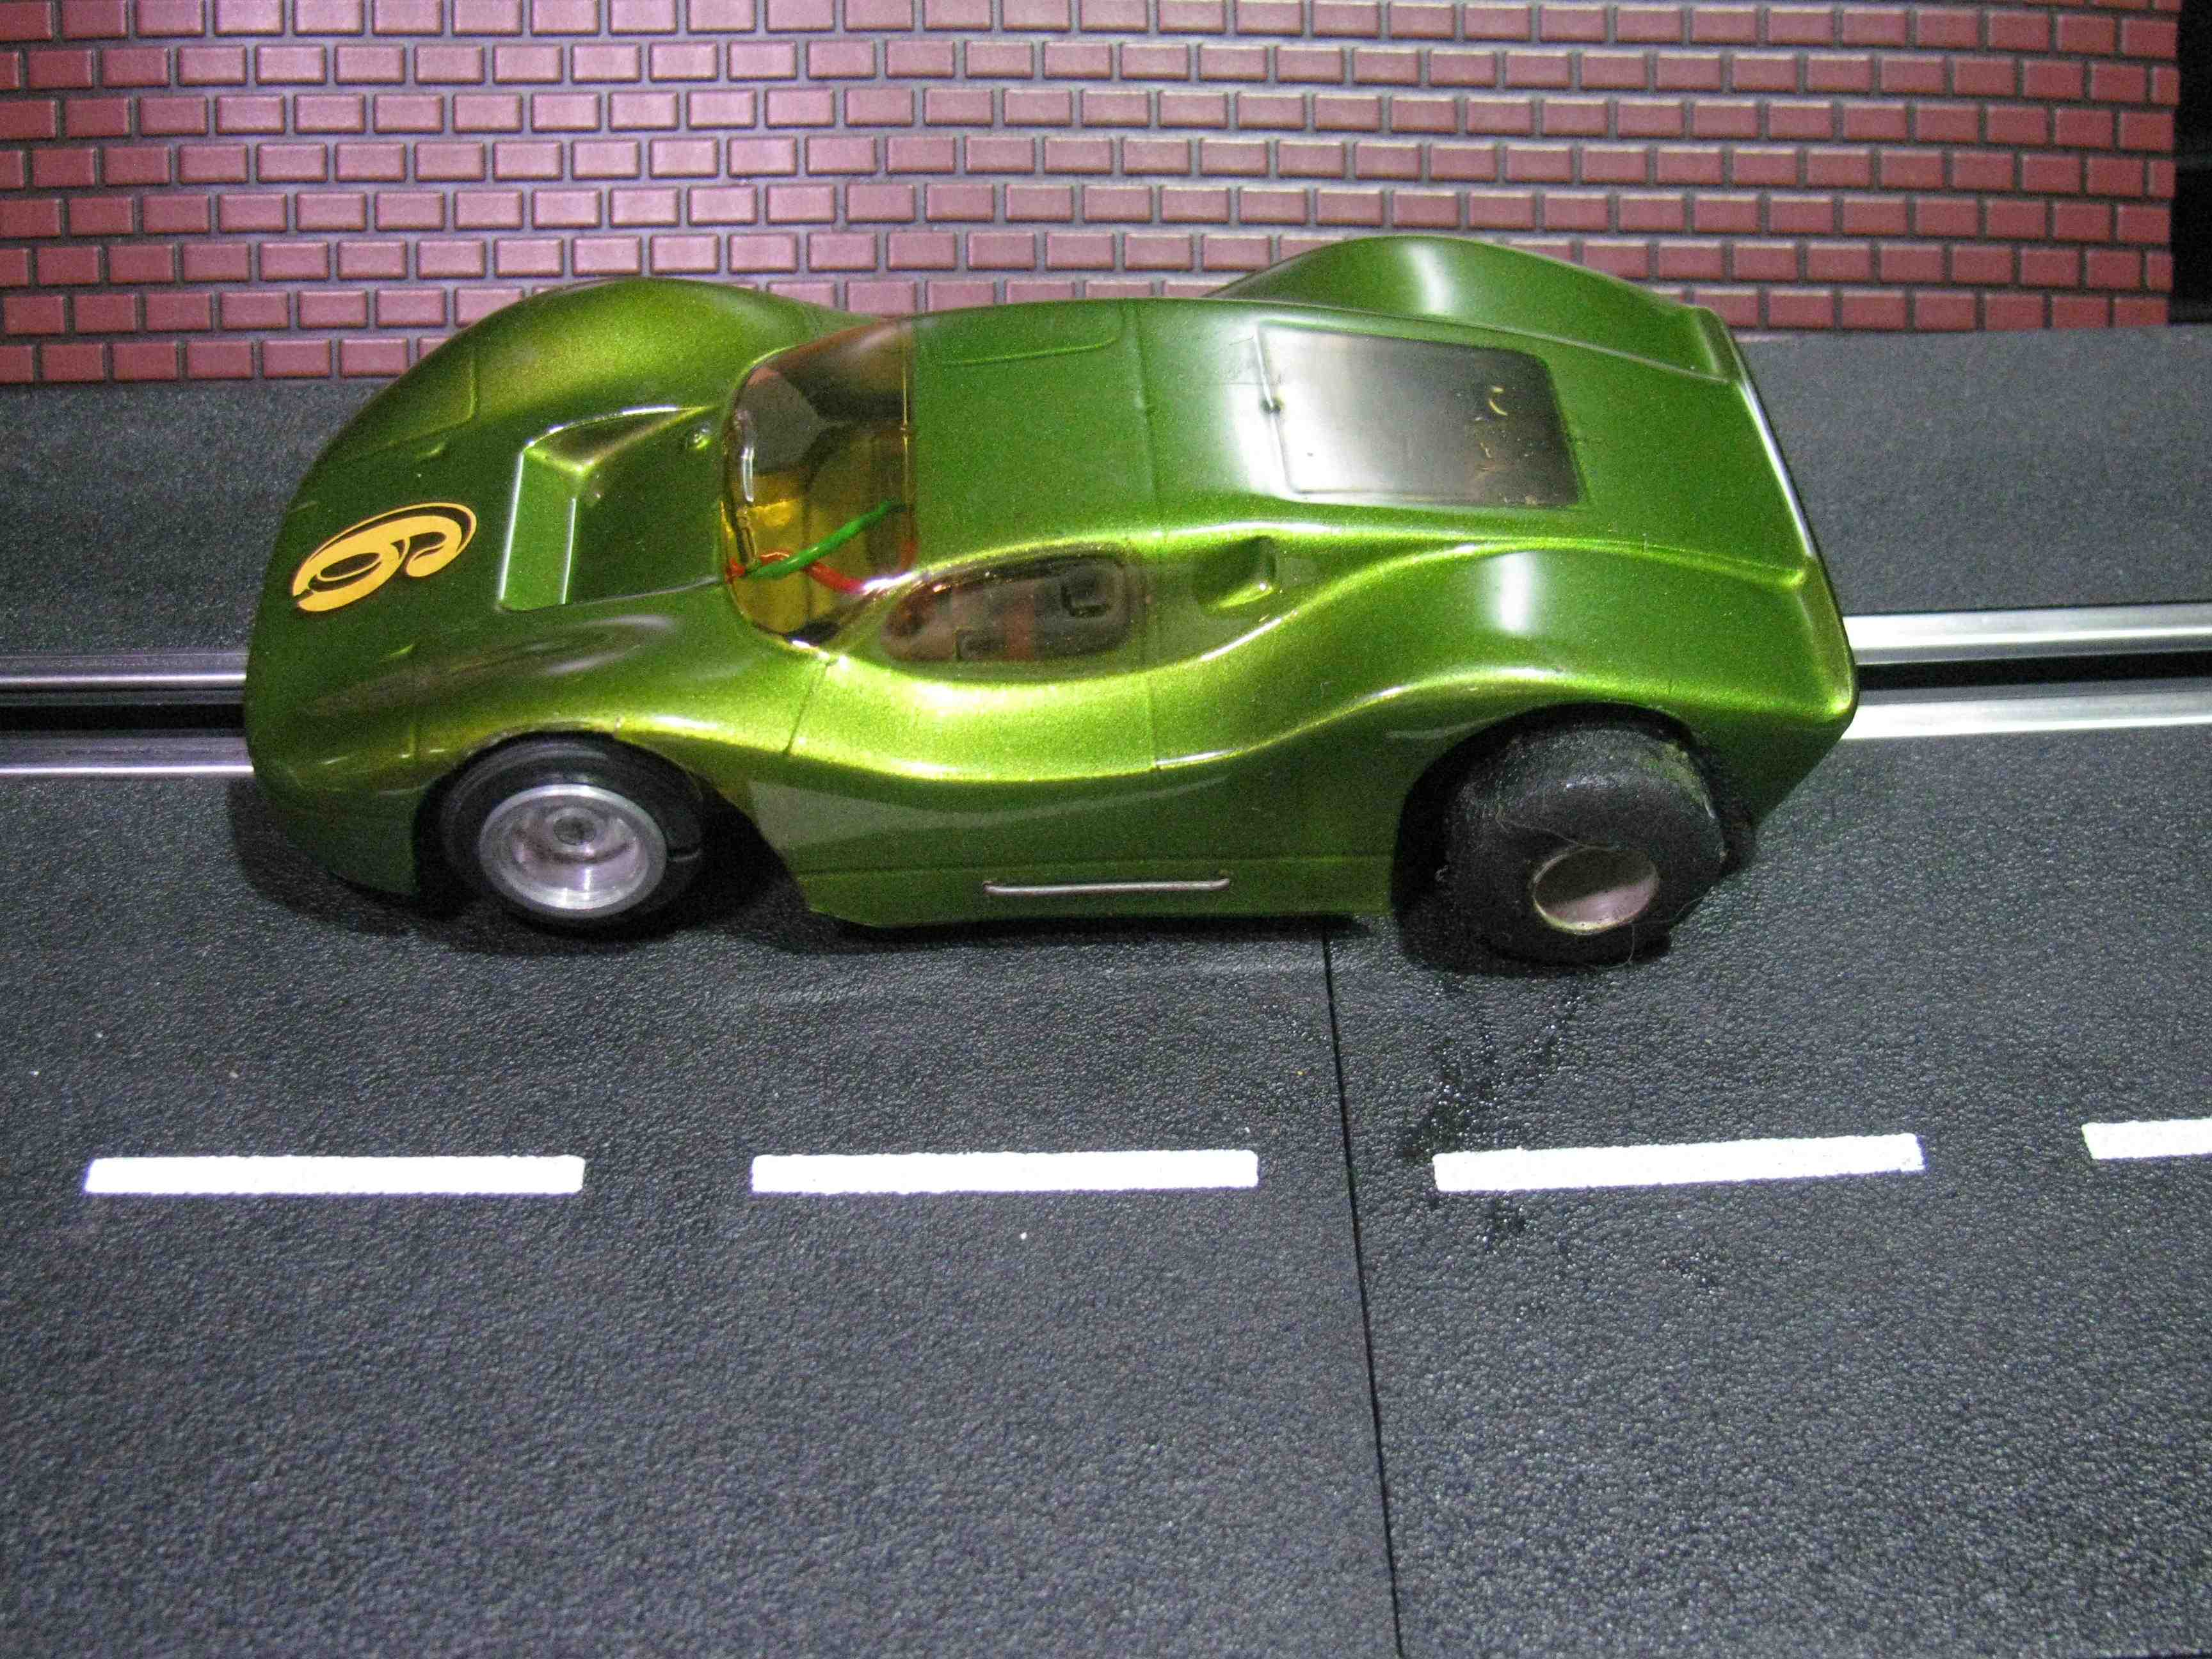 * SOLD * Vintage 1/32 Scale Slot Car in a classic green with Solid Chassis